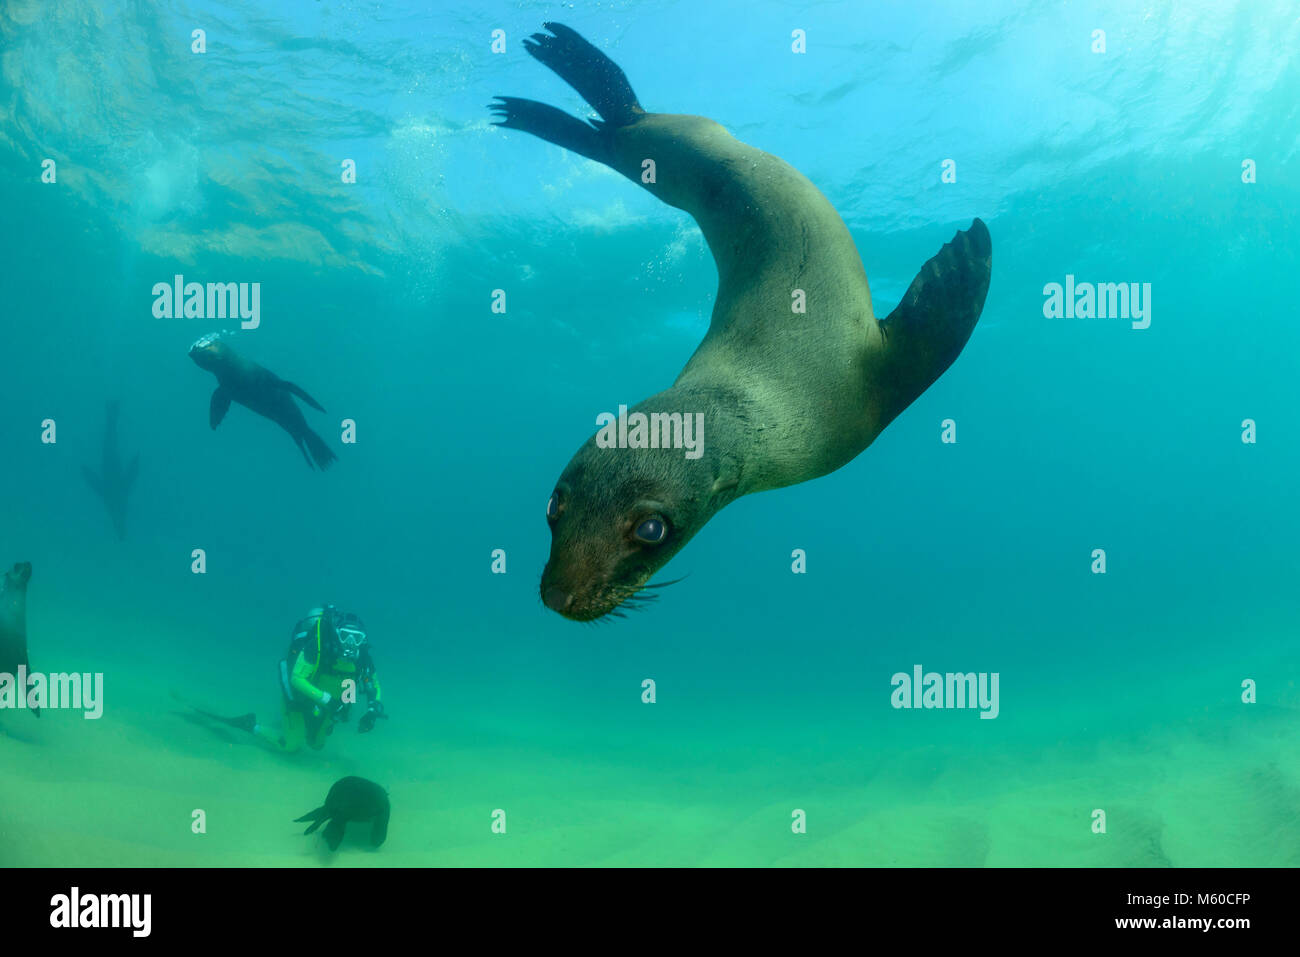 South African Fur Seal (Arctocephalus pusillus pusillus). Group with diver swimming underwater. South Africa, Plettenberg - Stock Image